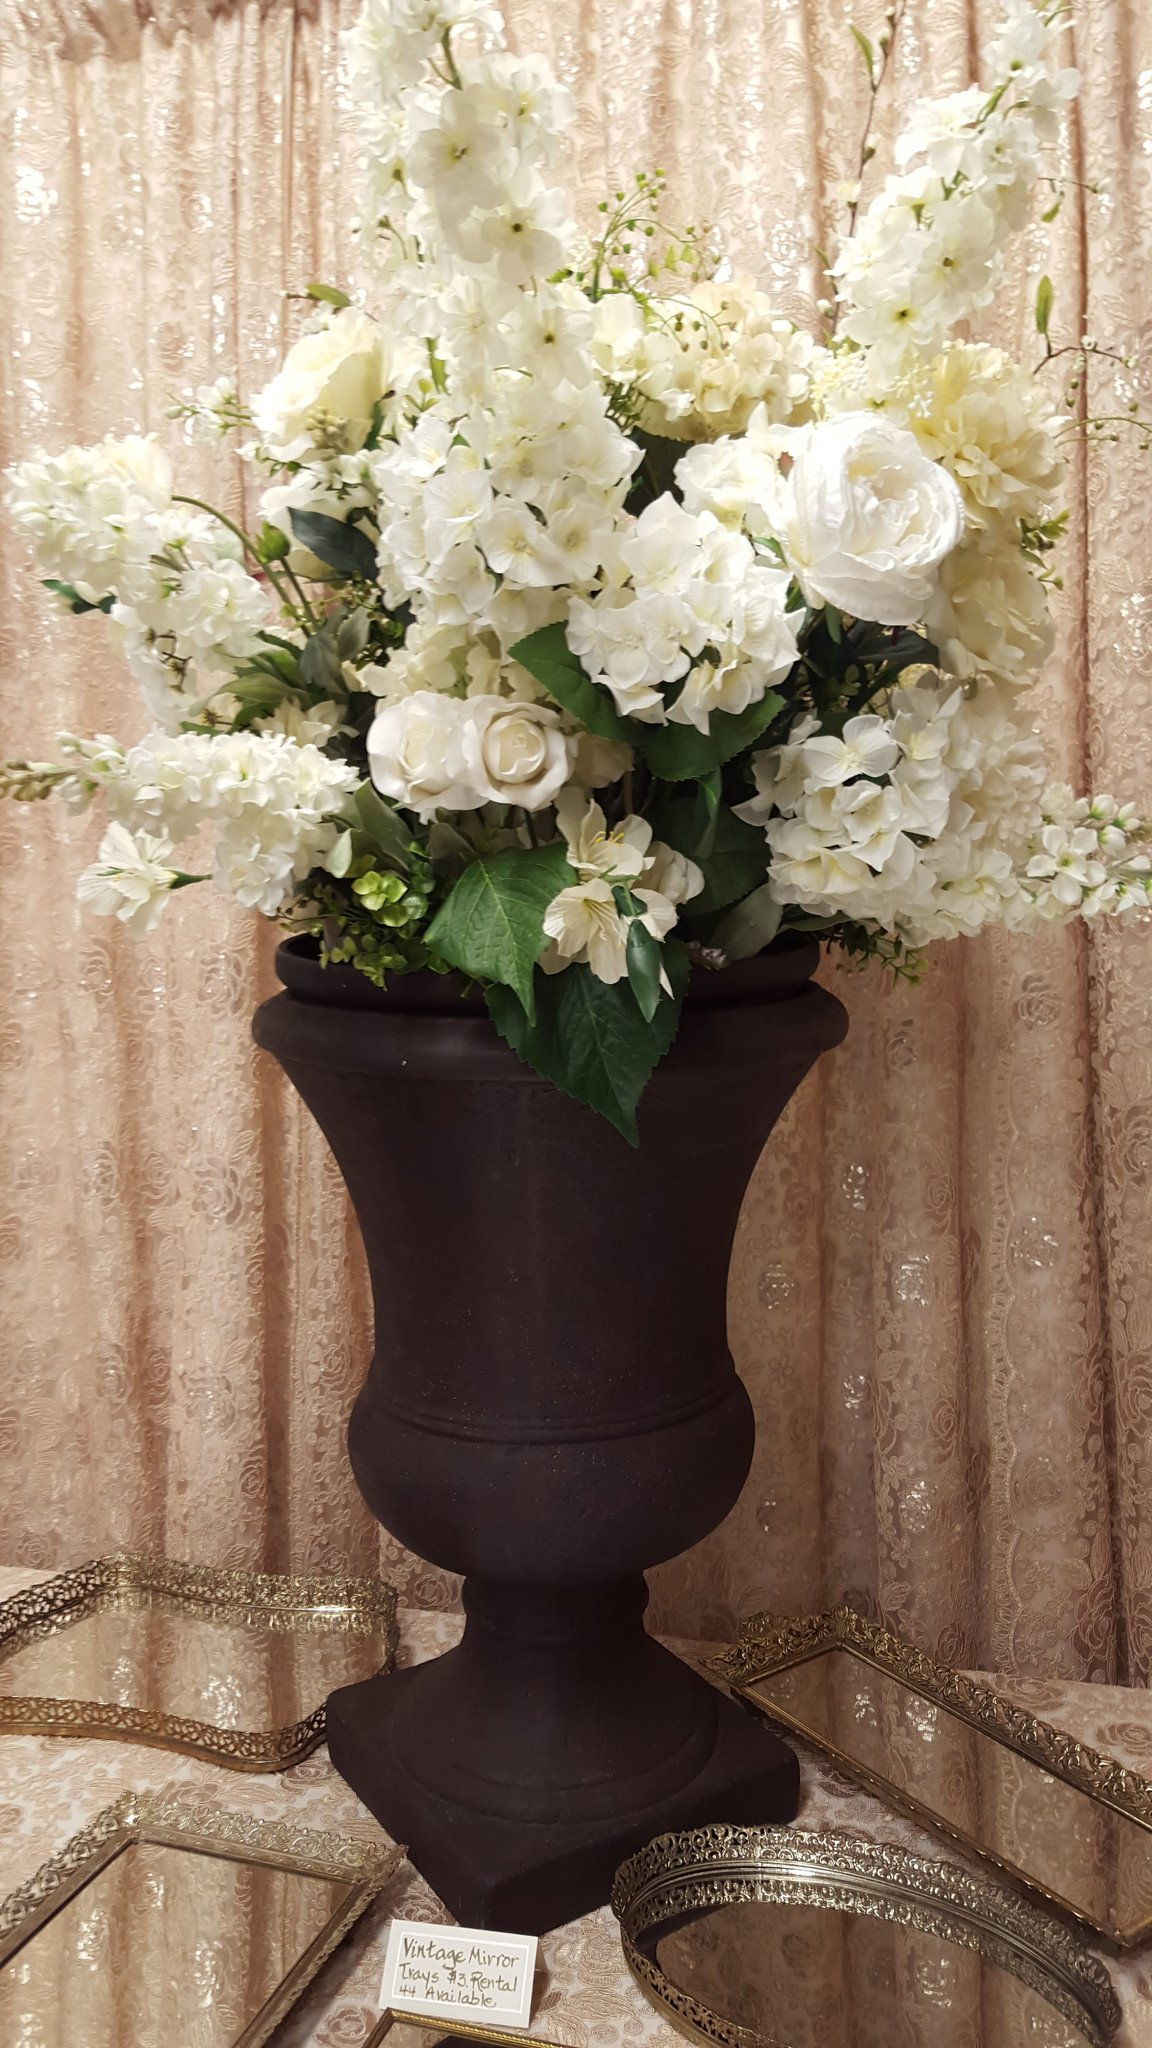 Floral Arrangement Image